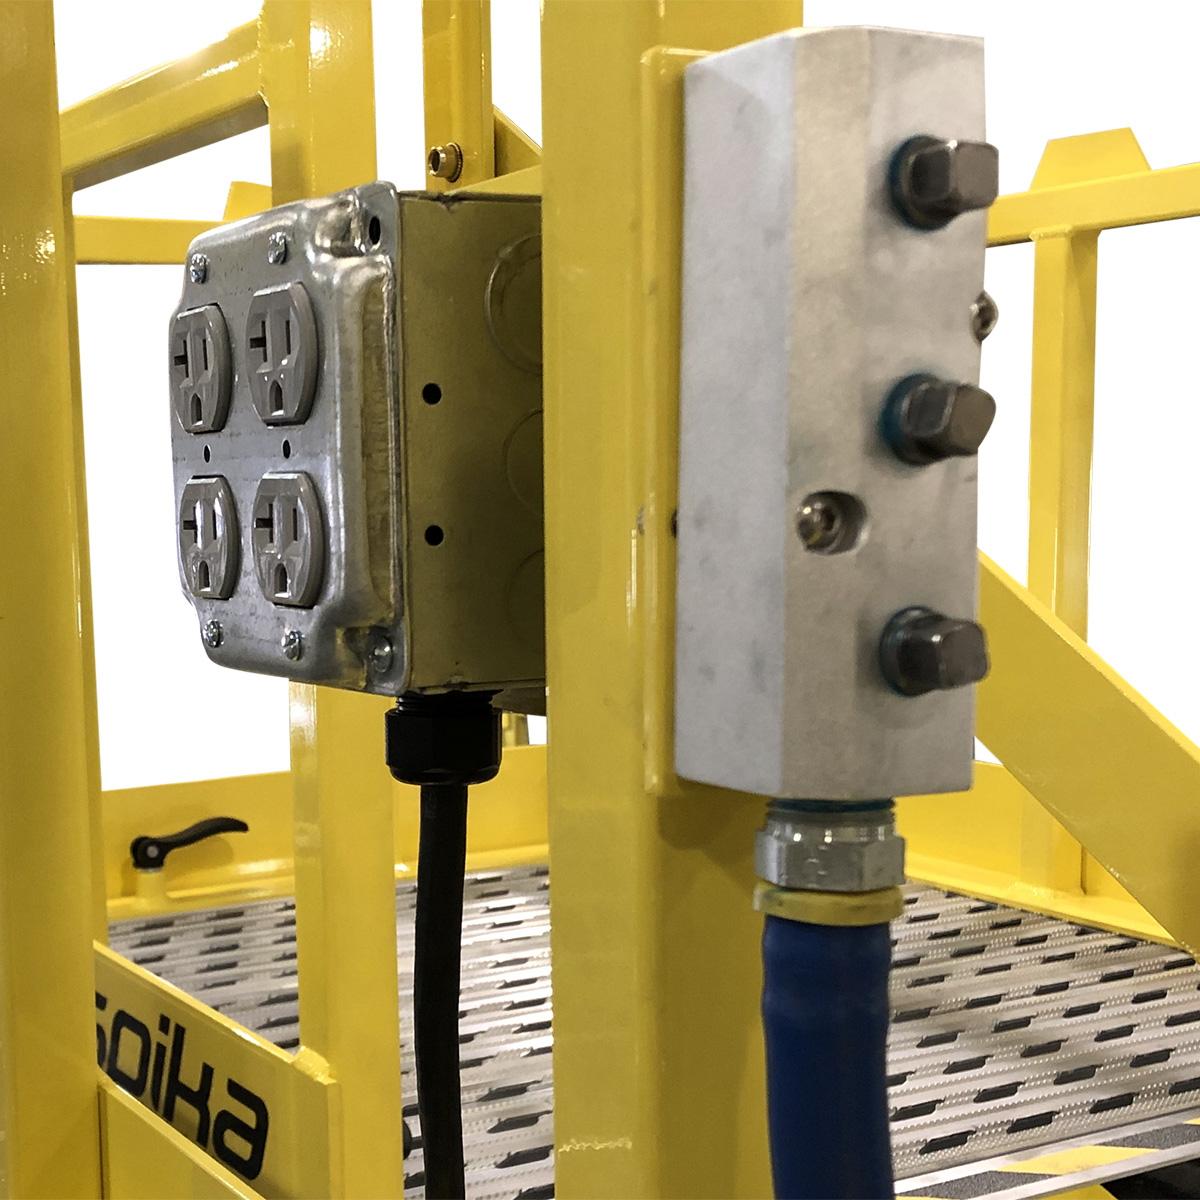 On-deck electric and air supplies on OSHA compliant portable work stands.